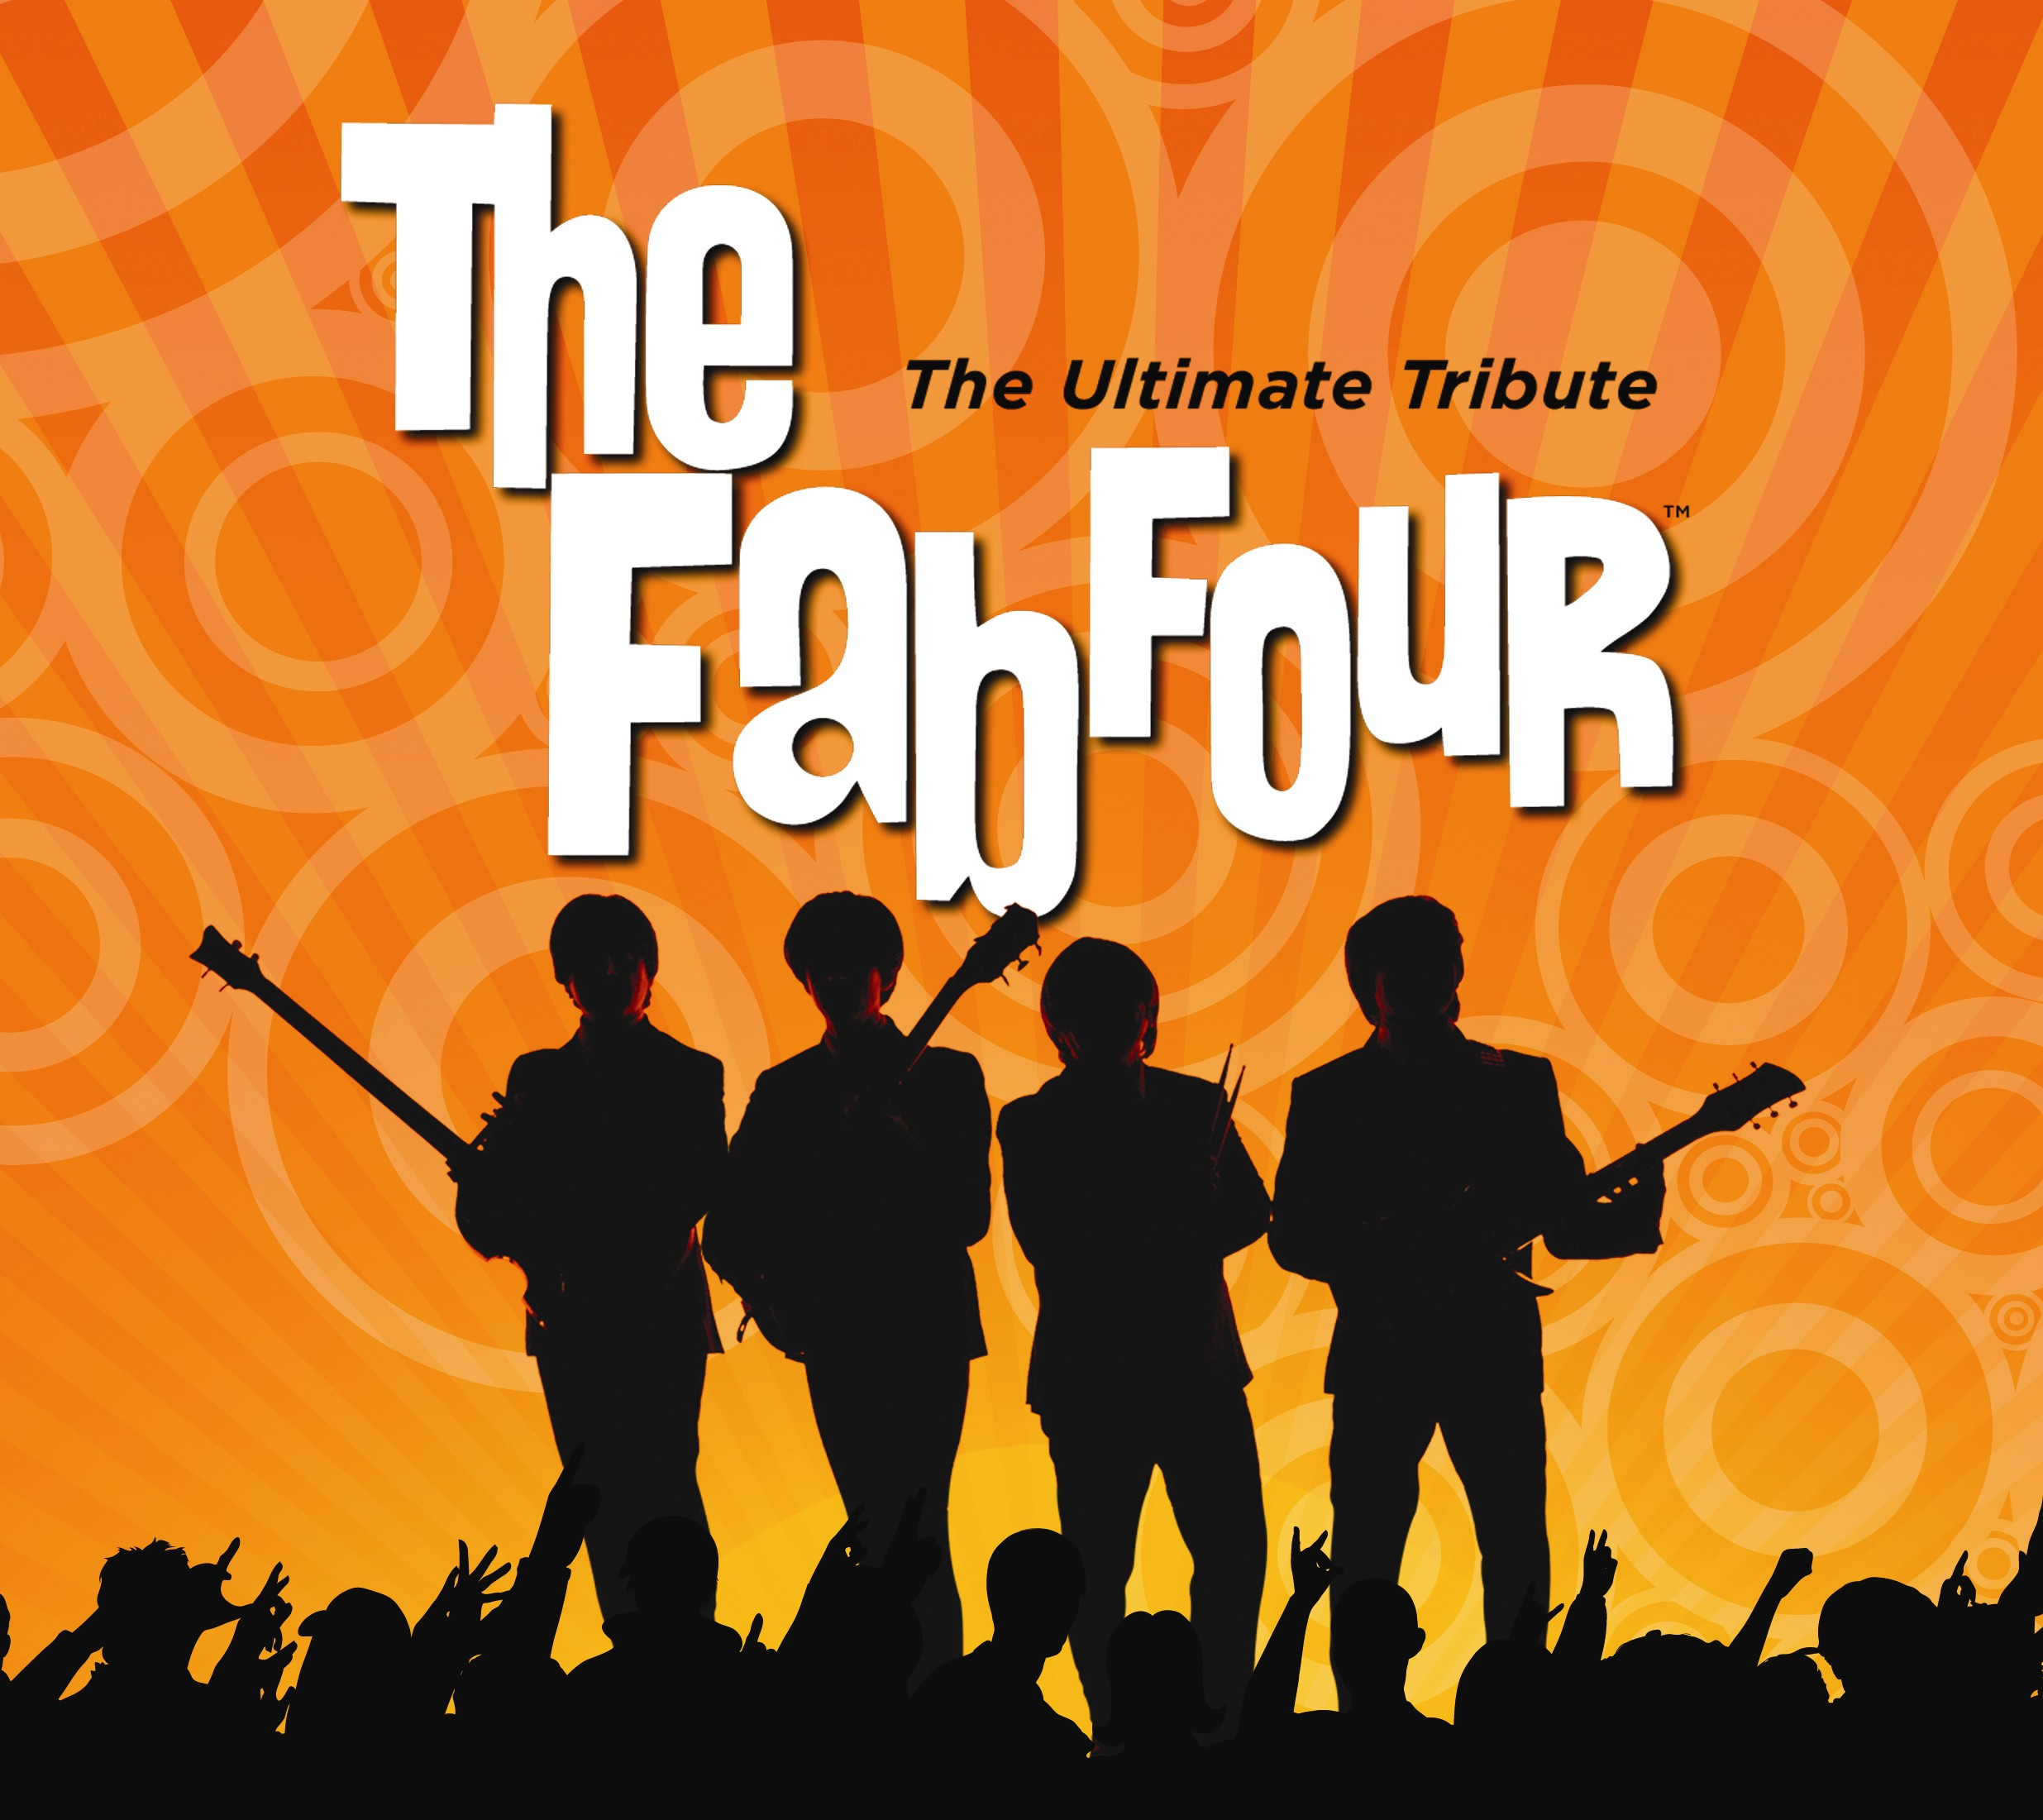 Cover Band The Fab Four